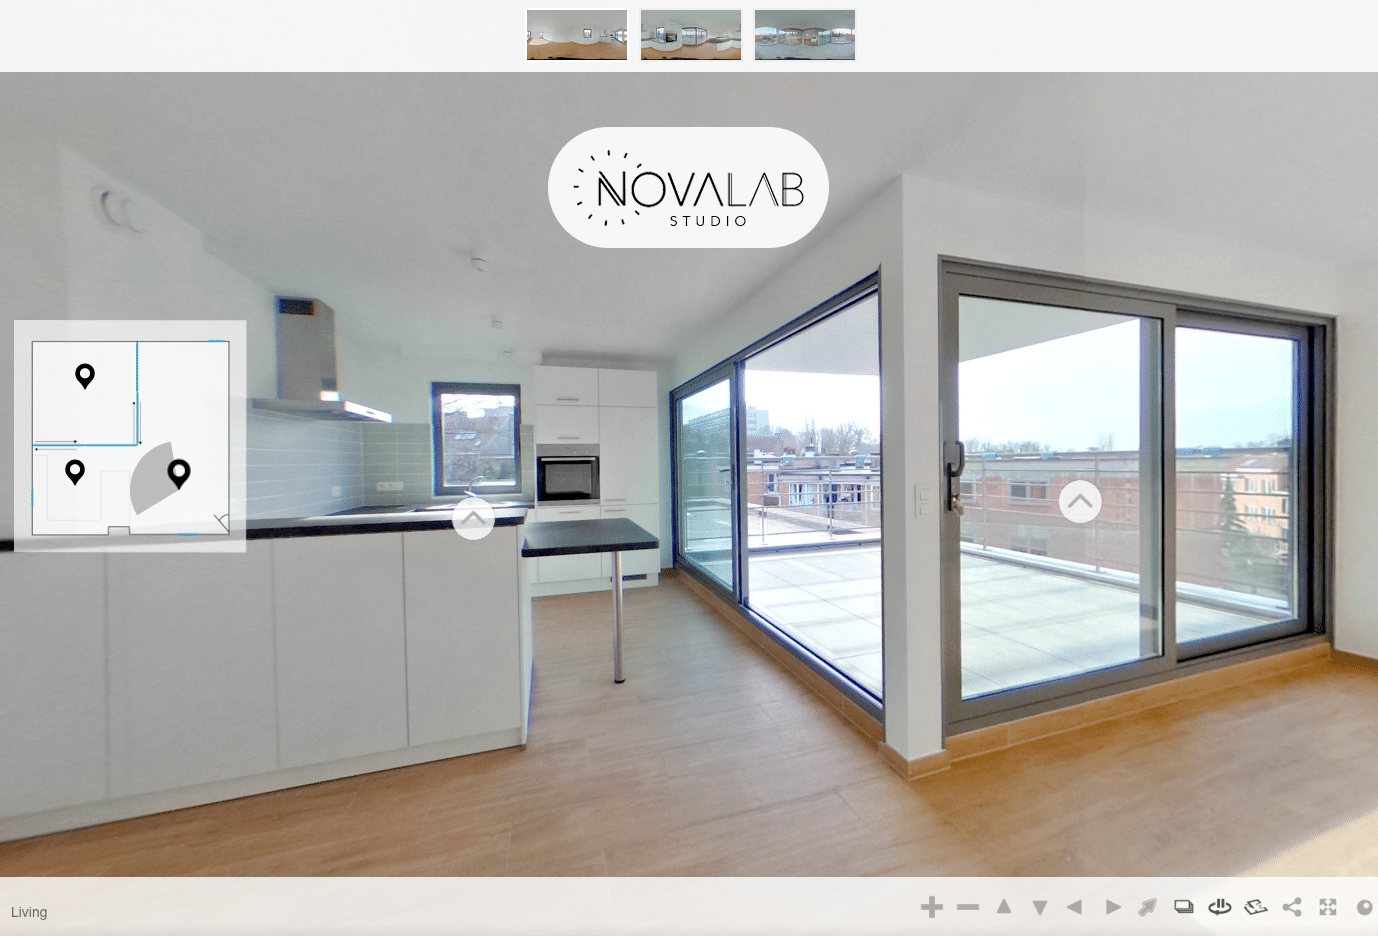 exemple visite virtuelle 360 novalab